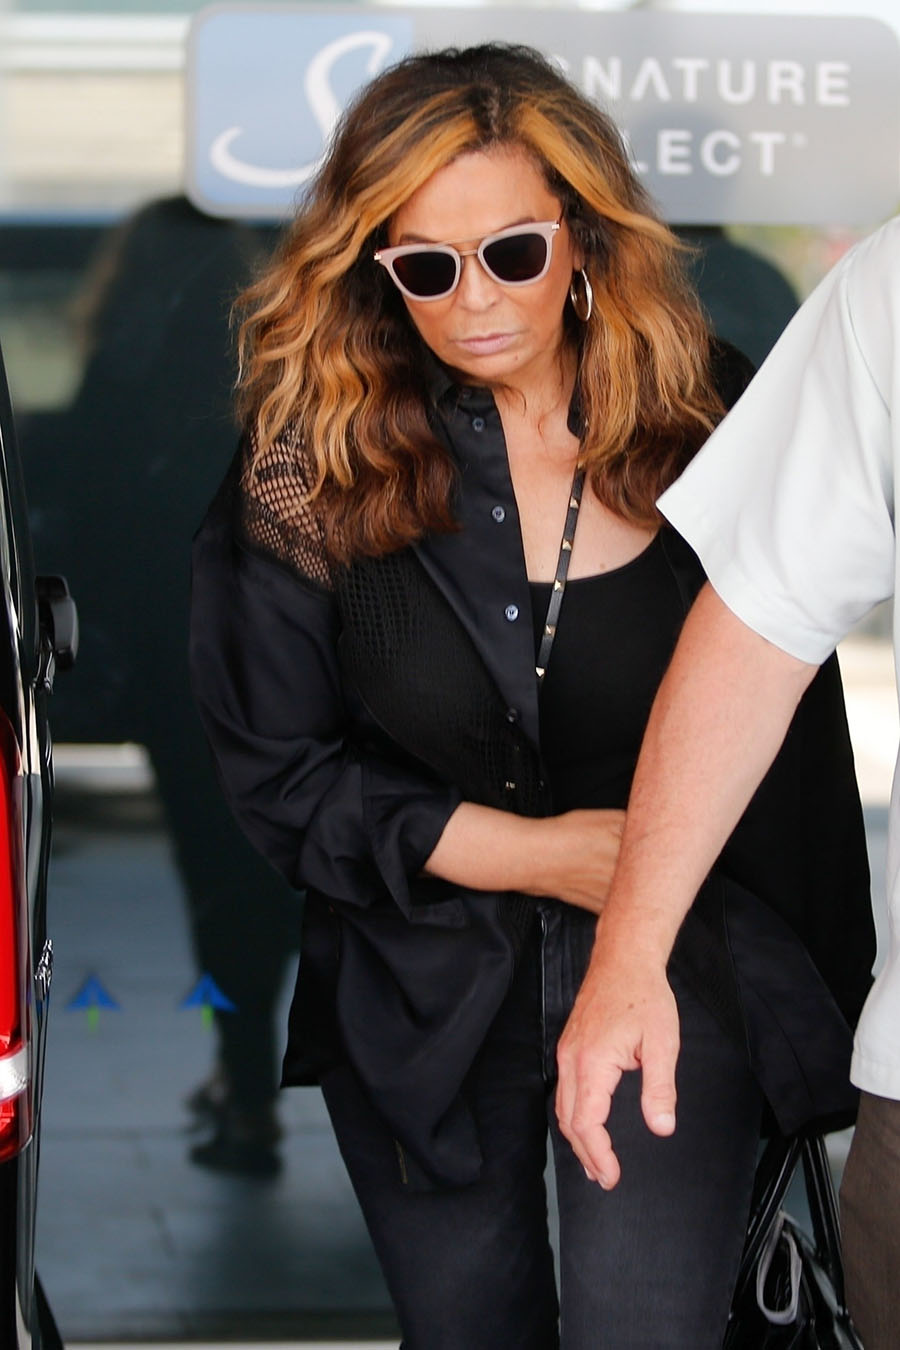 Beyonce S Mom Tina Knowles Accompanies Her And Jay Z At